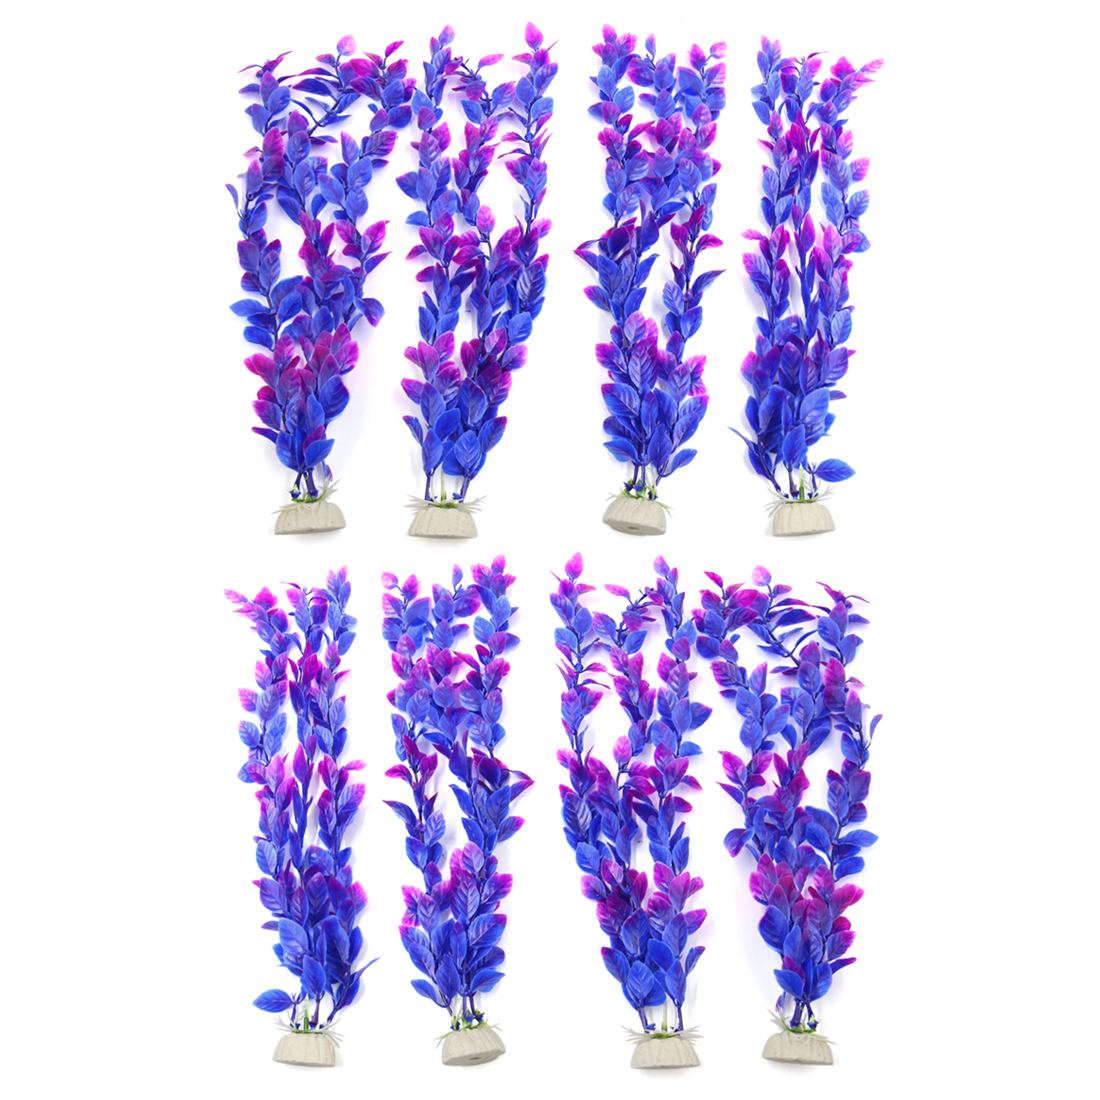 8pcs Purple Plastic Aquarium Fish Tank Water Grass Plant Decorative Landscape